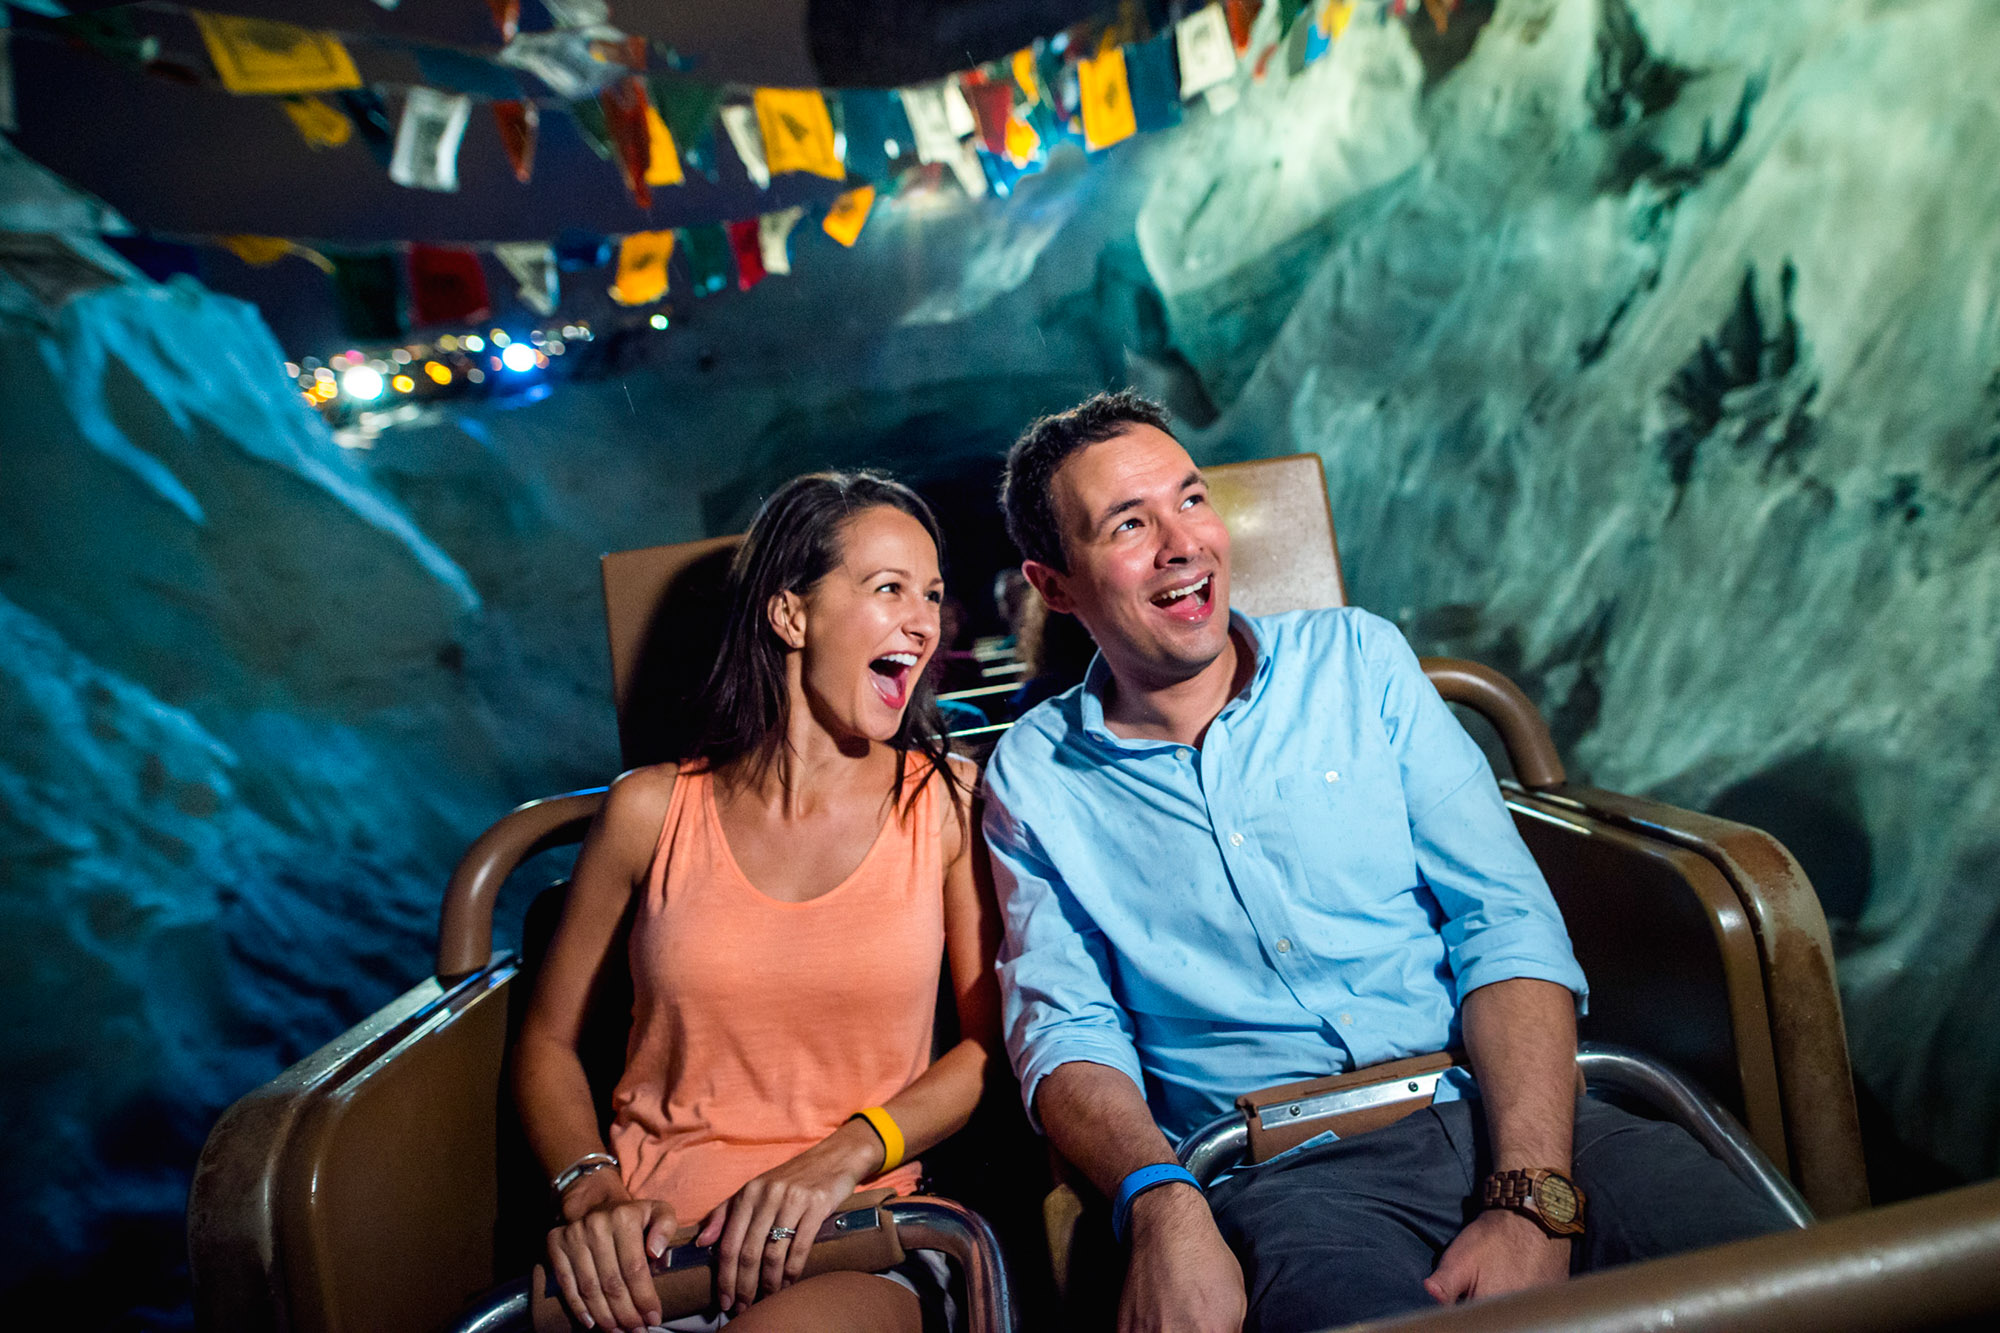 Expedition Everest thrills adventurers as it lurches forward and backward through the icy peaks of the Himalayas. At night, the majestic mountain challenges trekkers to an evening ride revealing breathtaking views of Disney's Animal Kingdom canopied by starlight. (Chloe Rice, photographer)